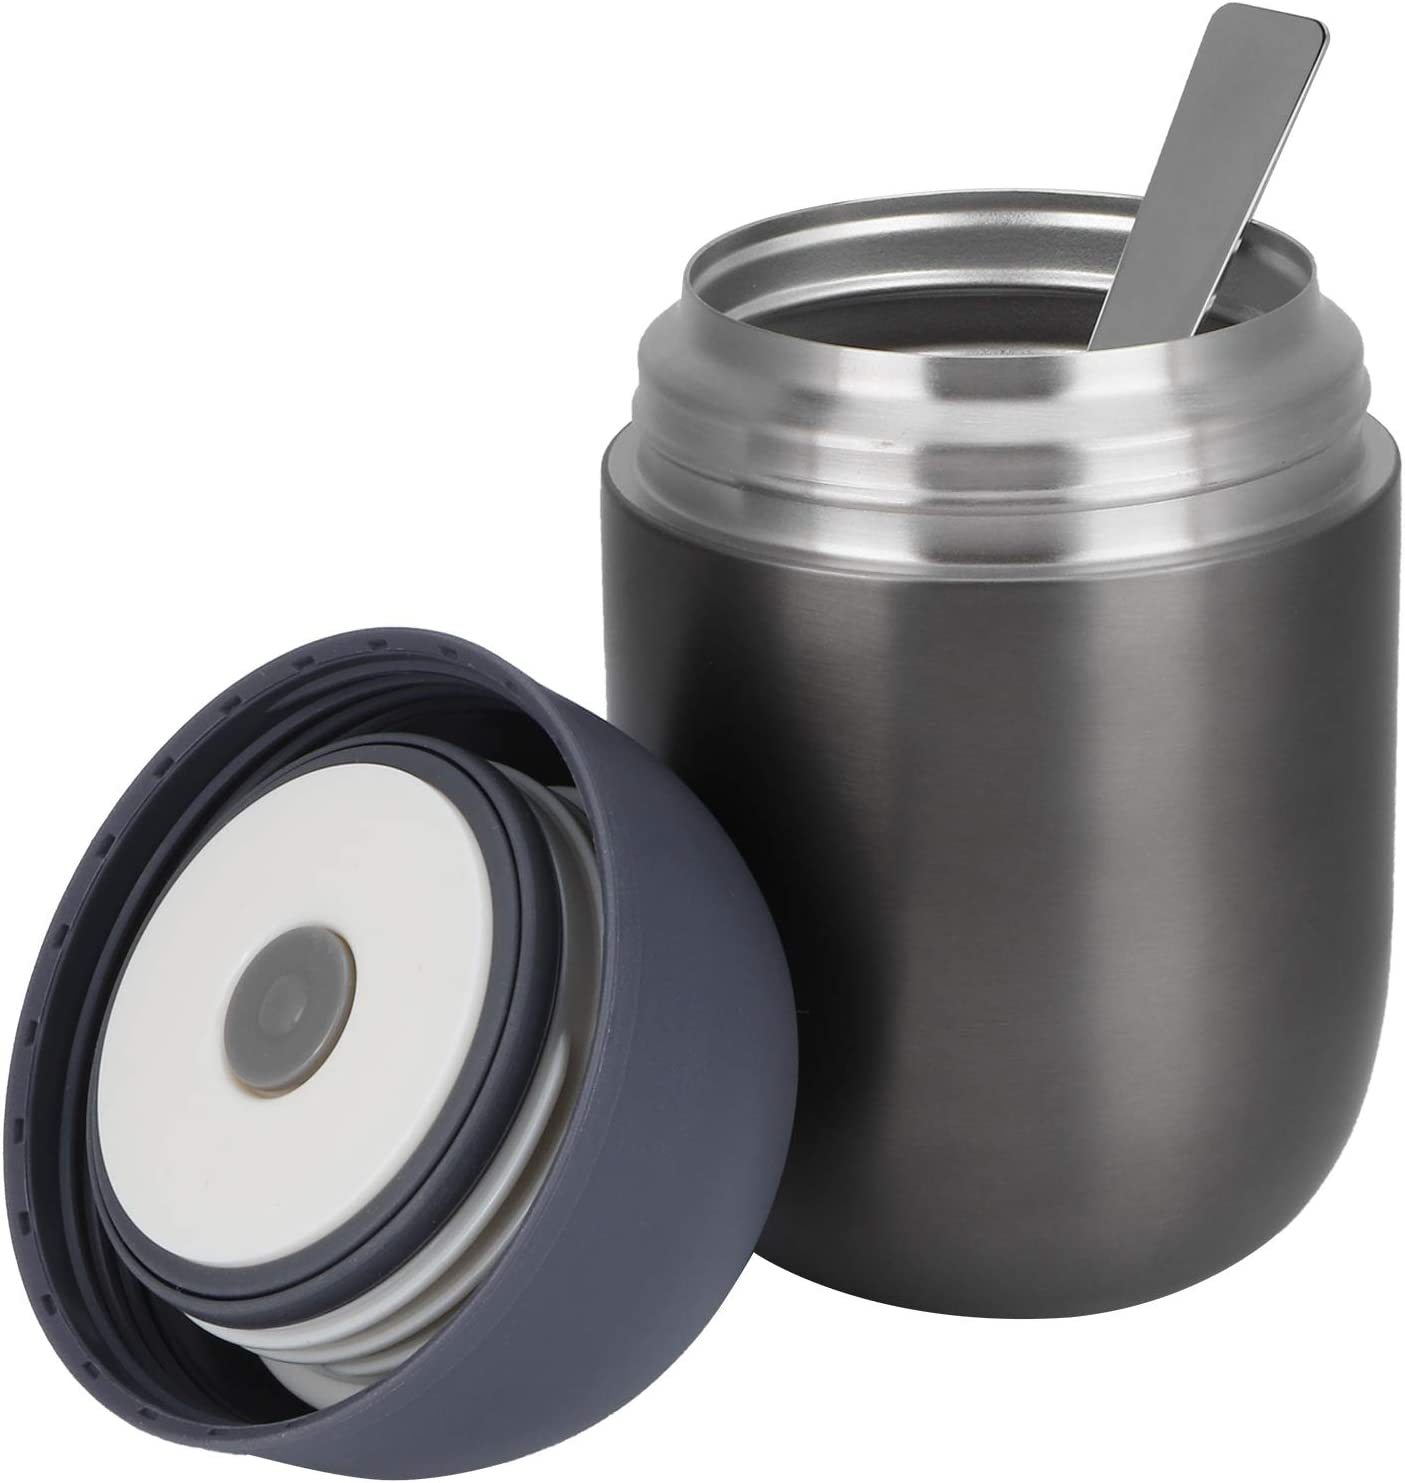 Stew Food Container, Food Grade Leakproof Vacuum Hot Food Flask, Insulated BPA Free Stainless Steel for Office Home